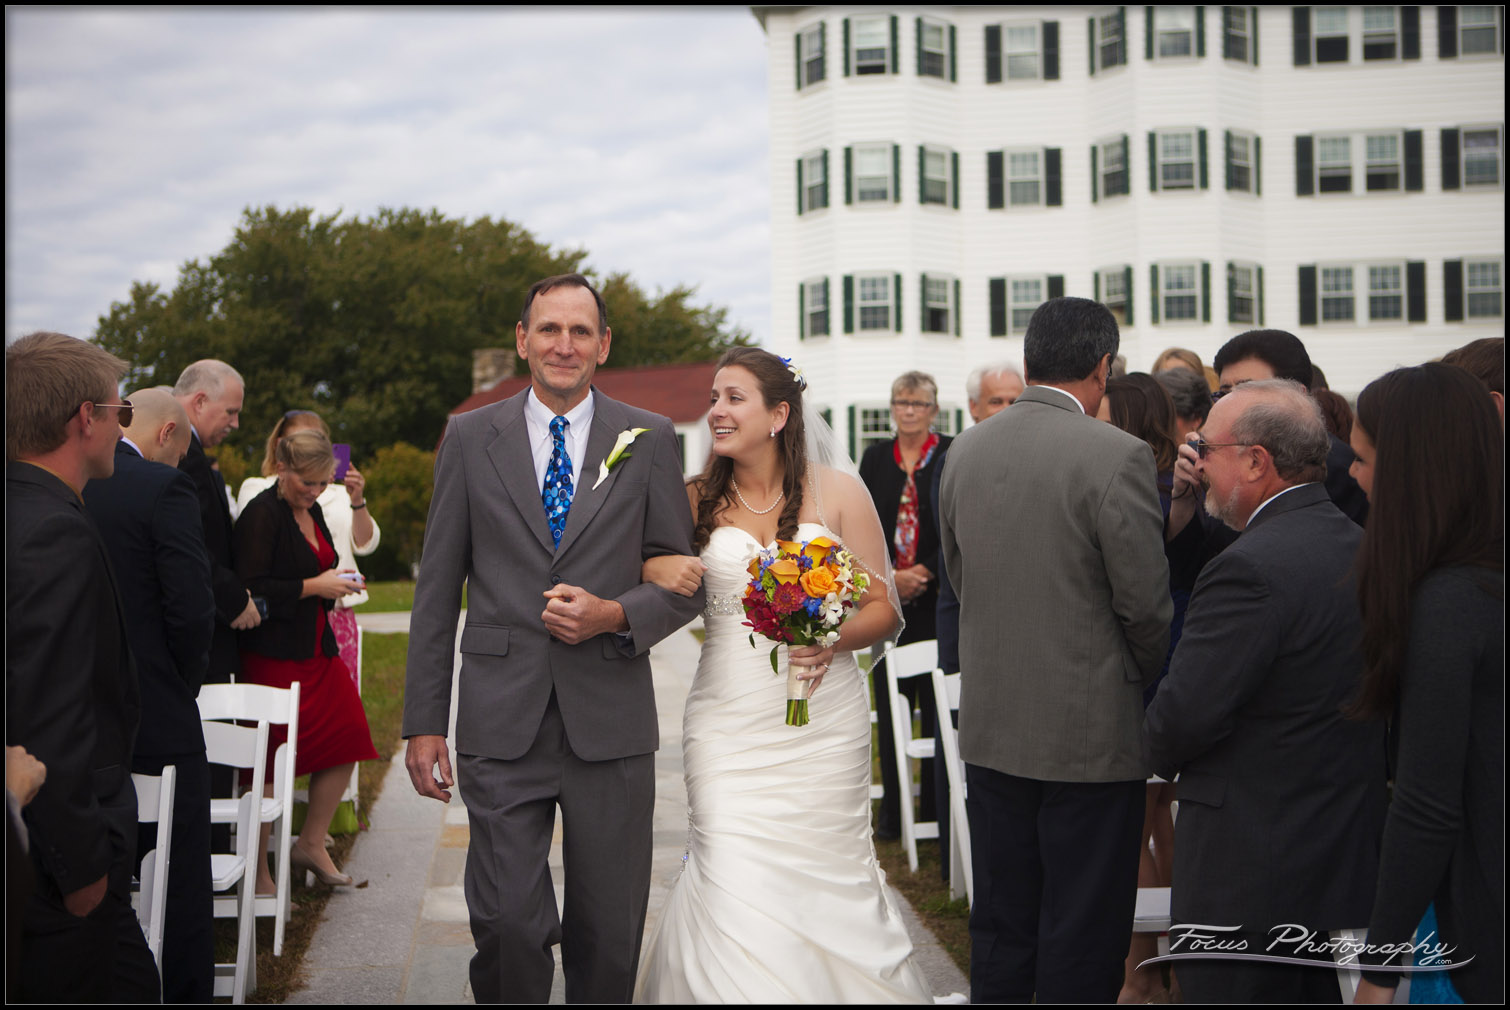 Wedding ceremony pictures from the Colony Hotel in Kennebunkport, Maine